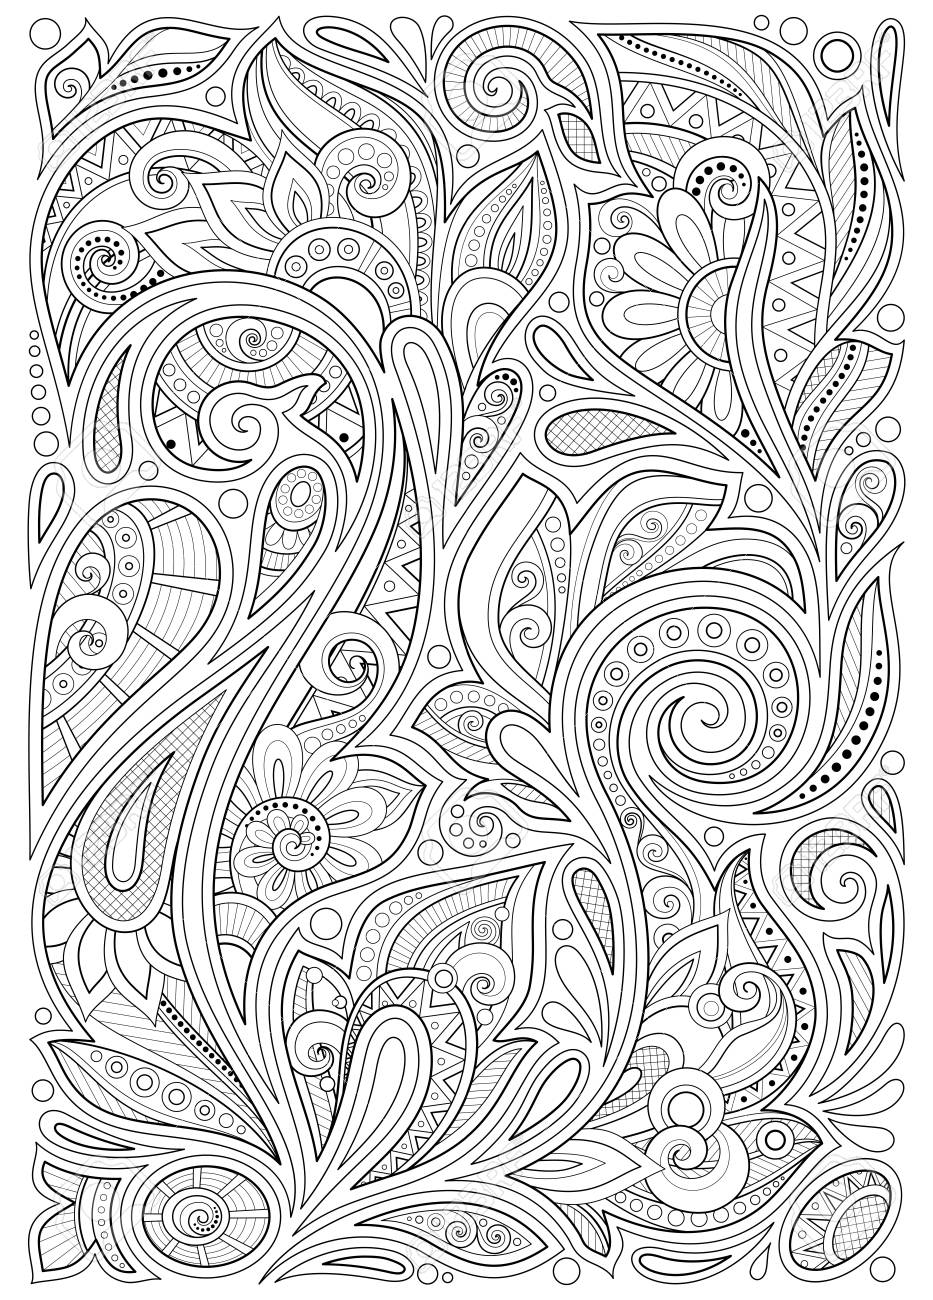 Monochrome Floral Background in Paisley Garden Indian Style. Decorative Composition with Flowers. Natural Doodle Motifs. Coloring Book Page. Vector Contour Illustration. Abstract Ornate Art - 125196648